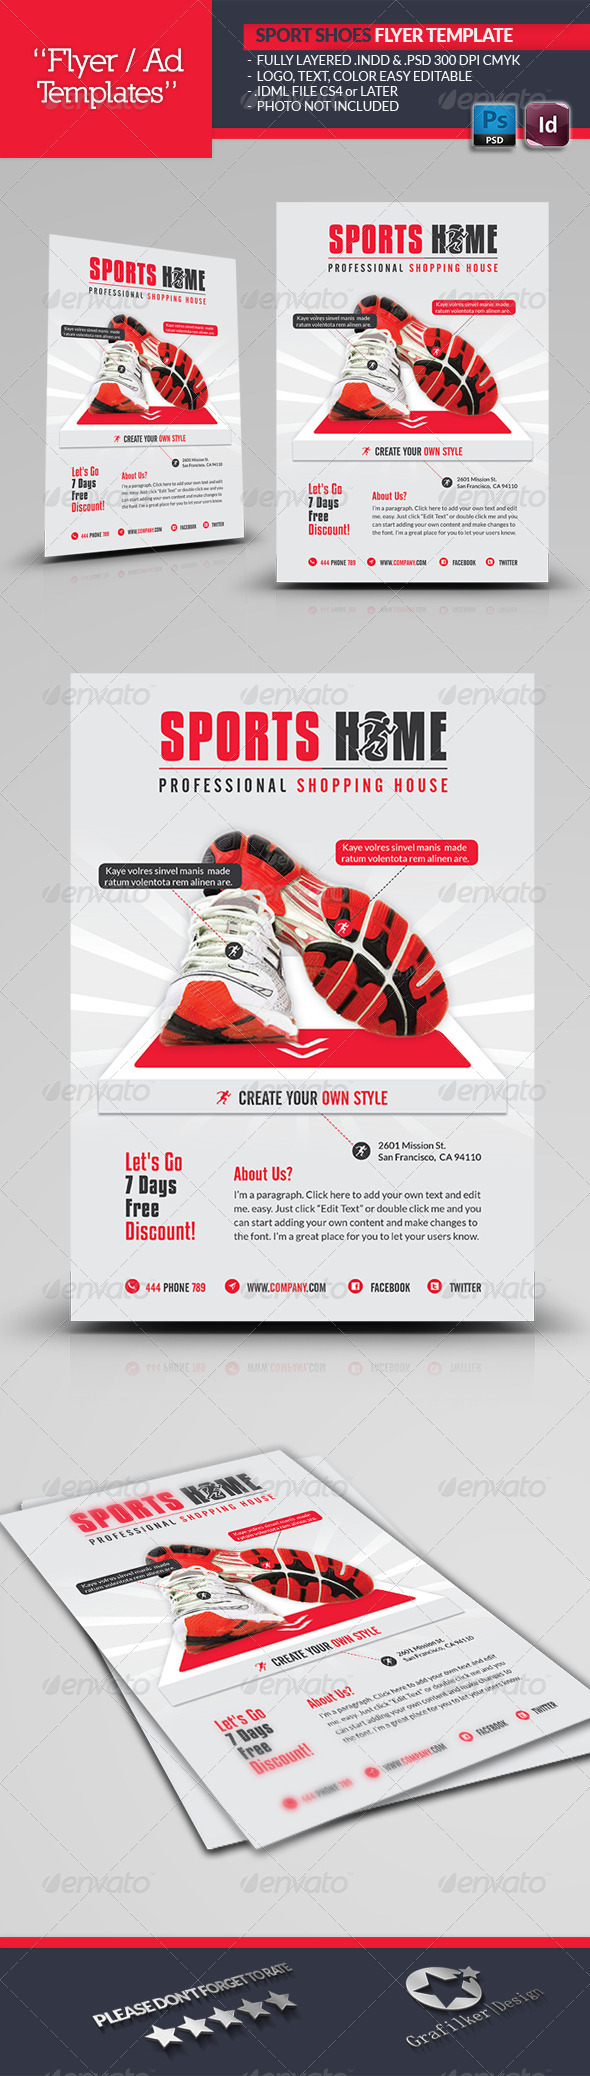 Sports House Flyer Template - Corporate Flyers